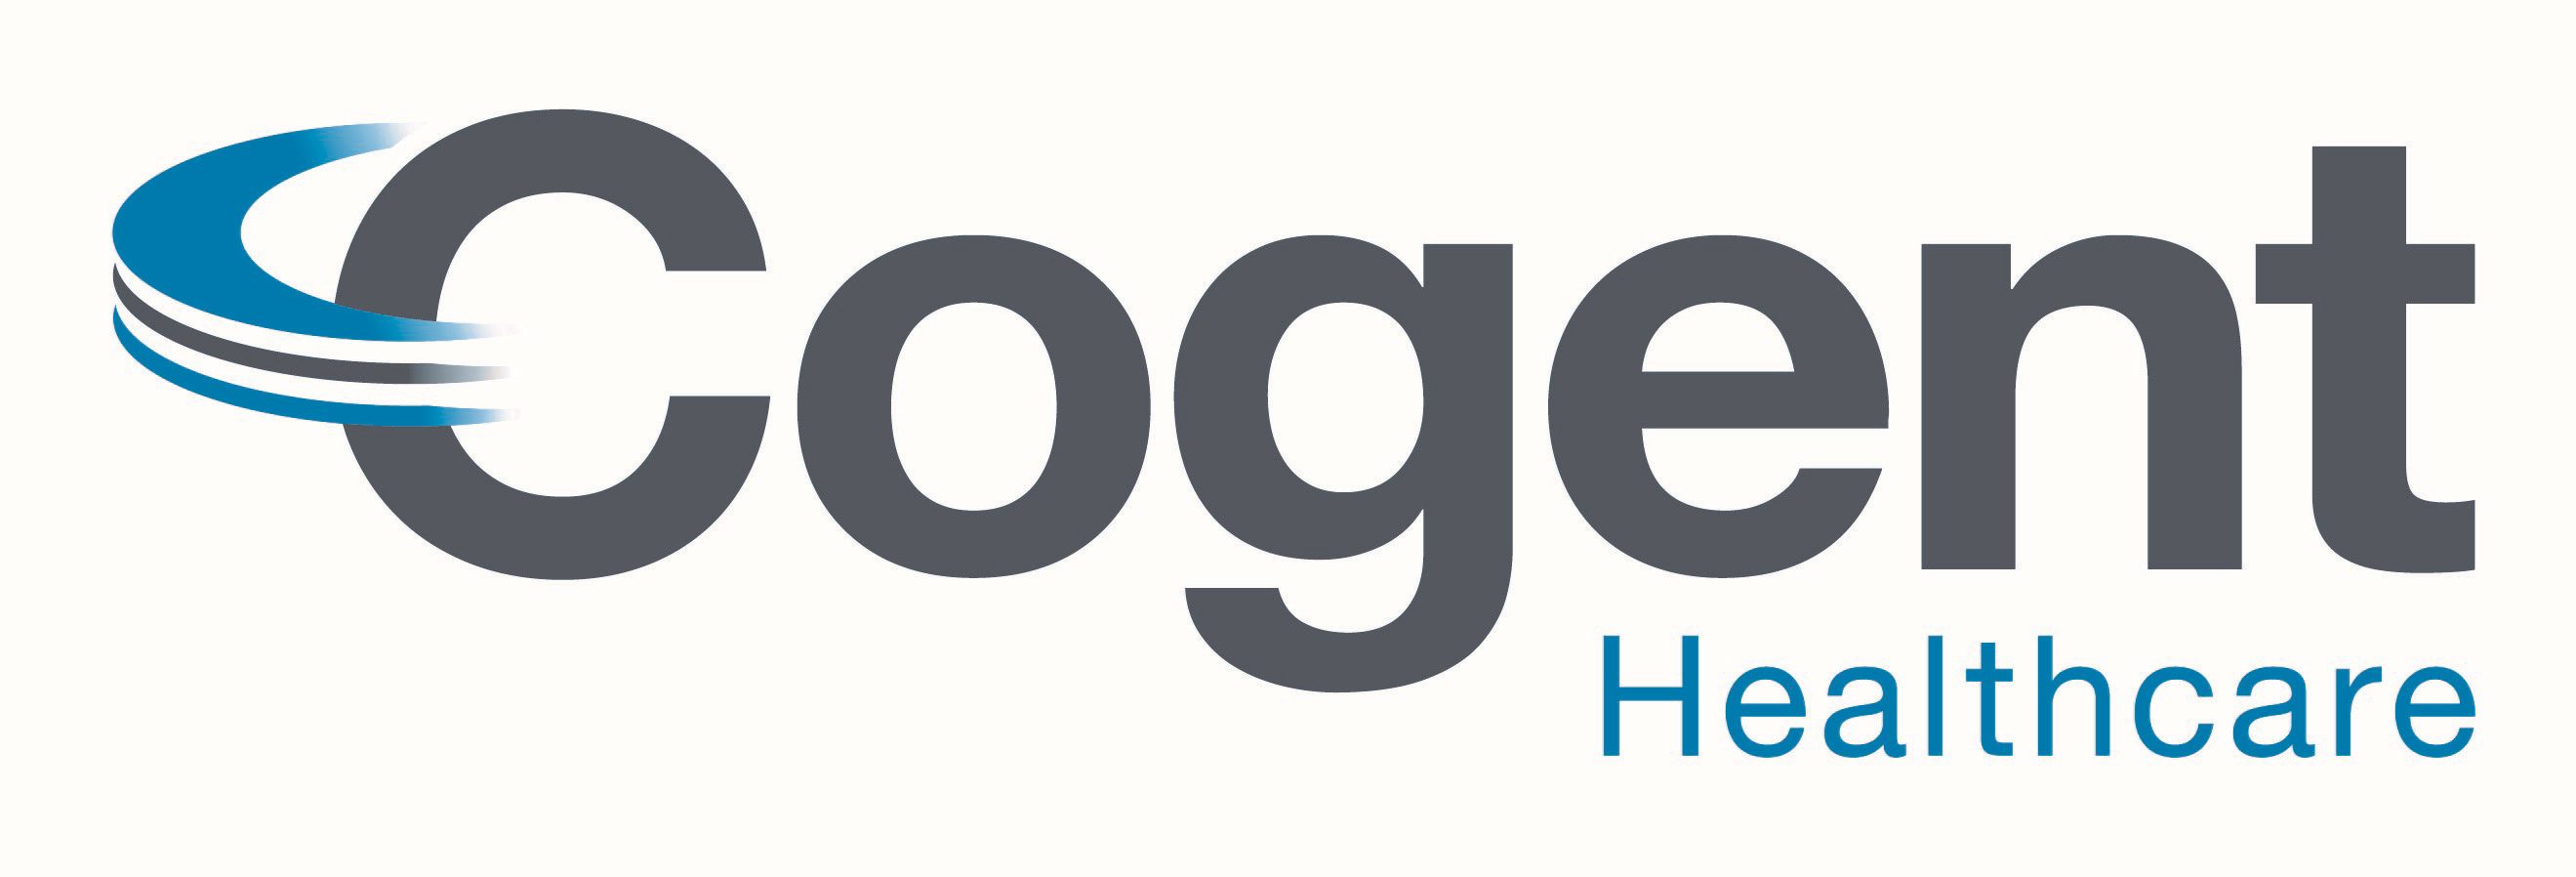 Cogent Healthcare logo 2014 highres